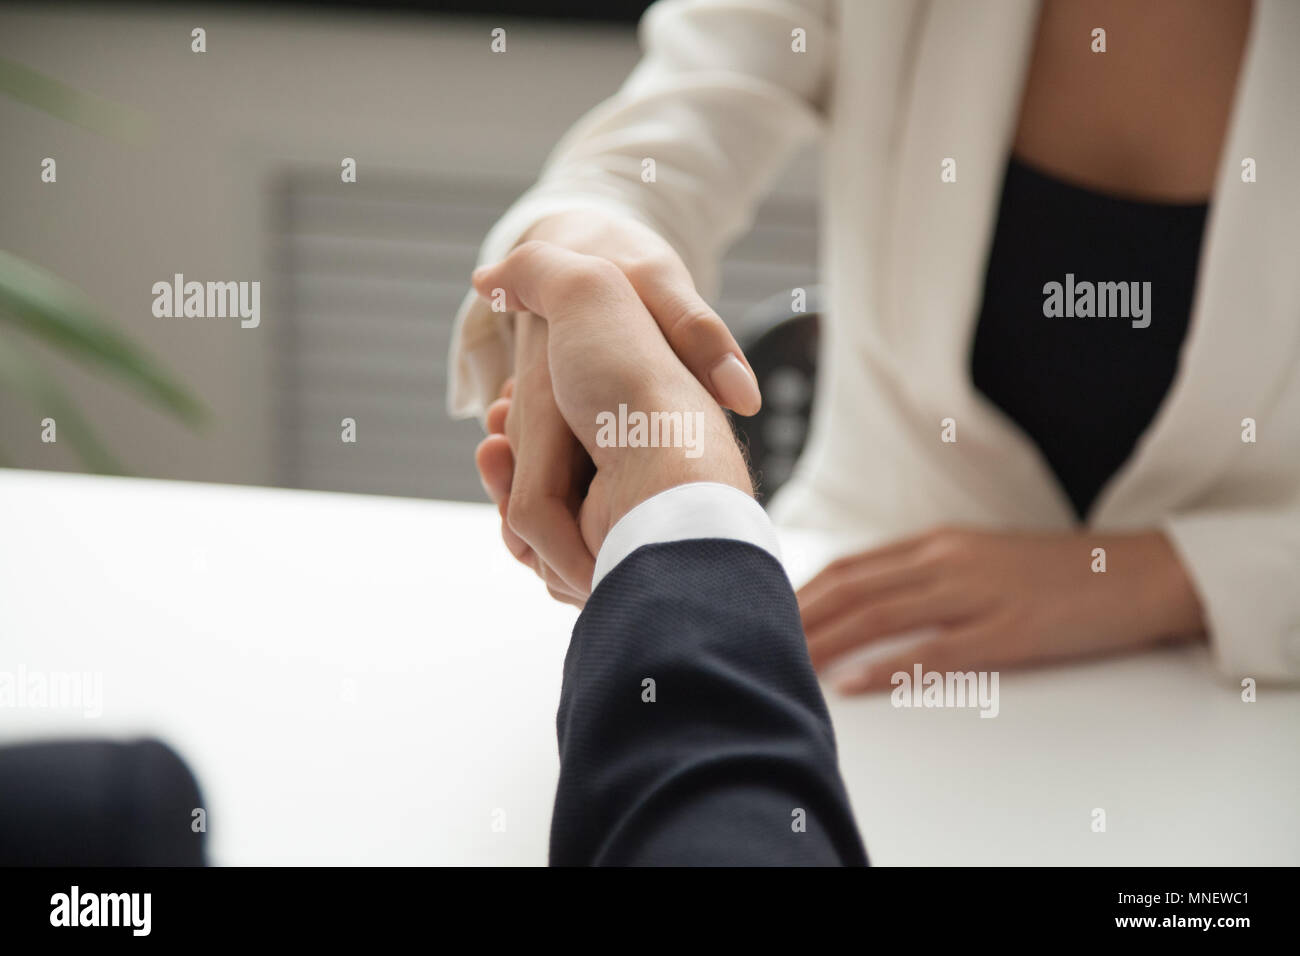 Female worker greeting business partner with handshake - Stock Image